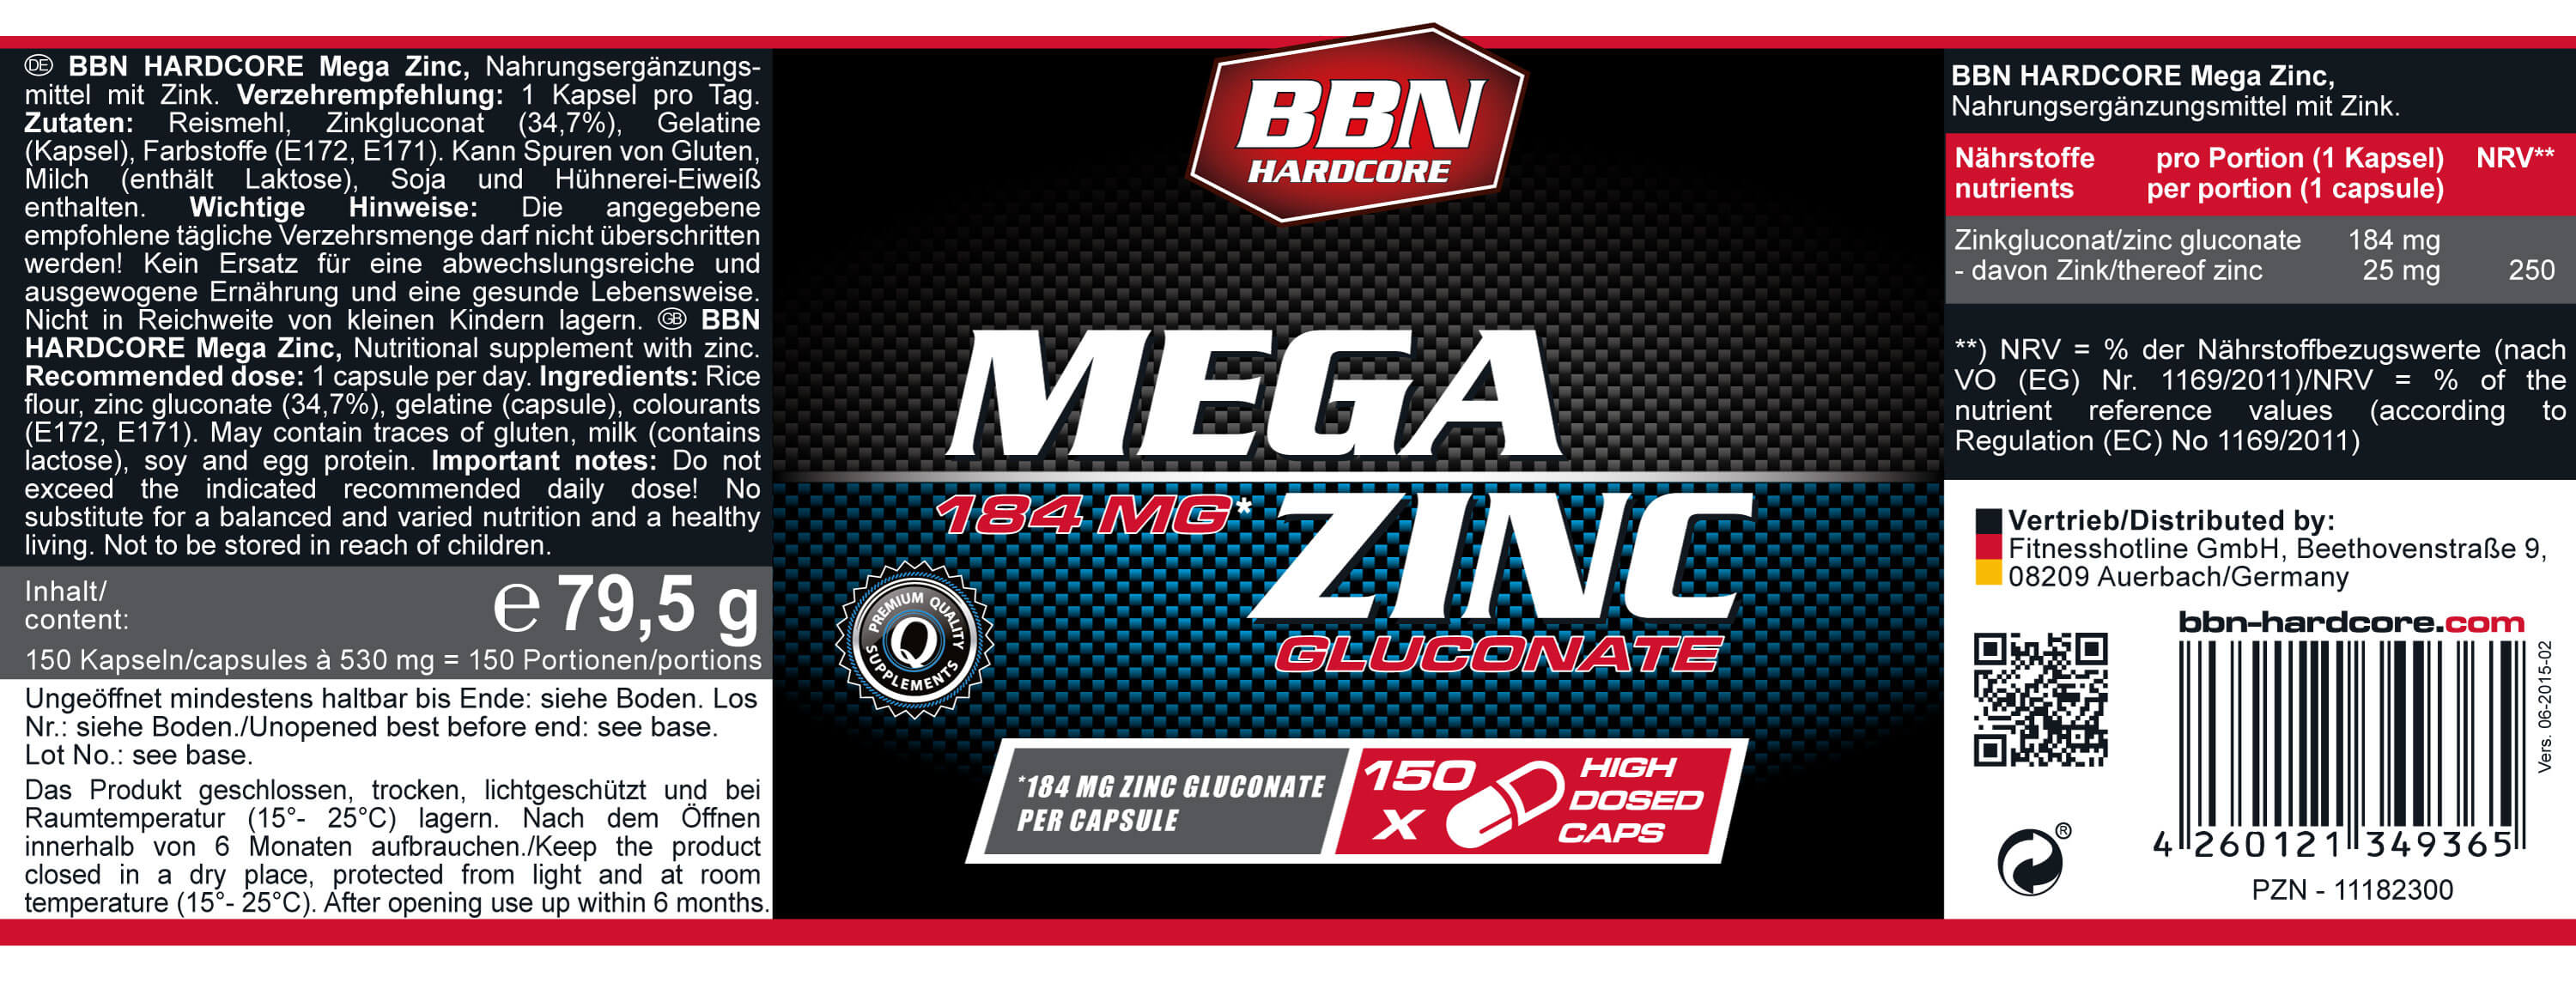 Best Body Nutrition Hardcore Mega Zinc Etikett